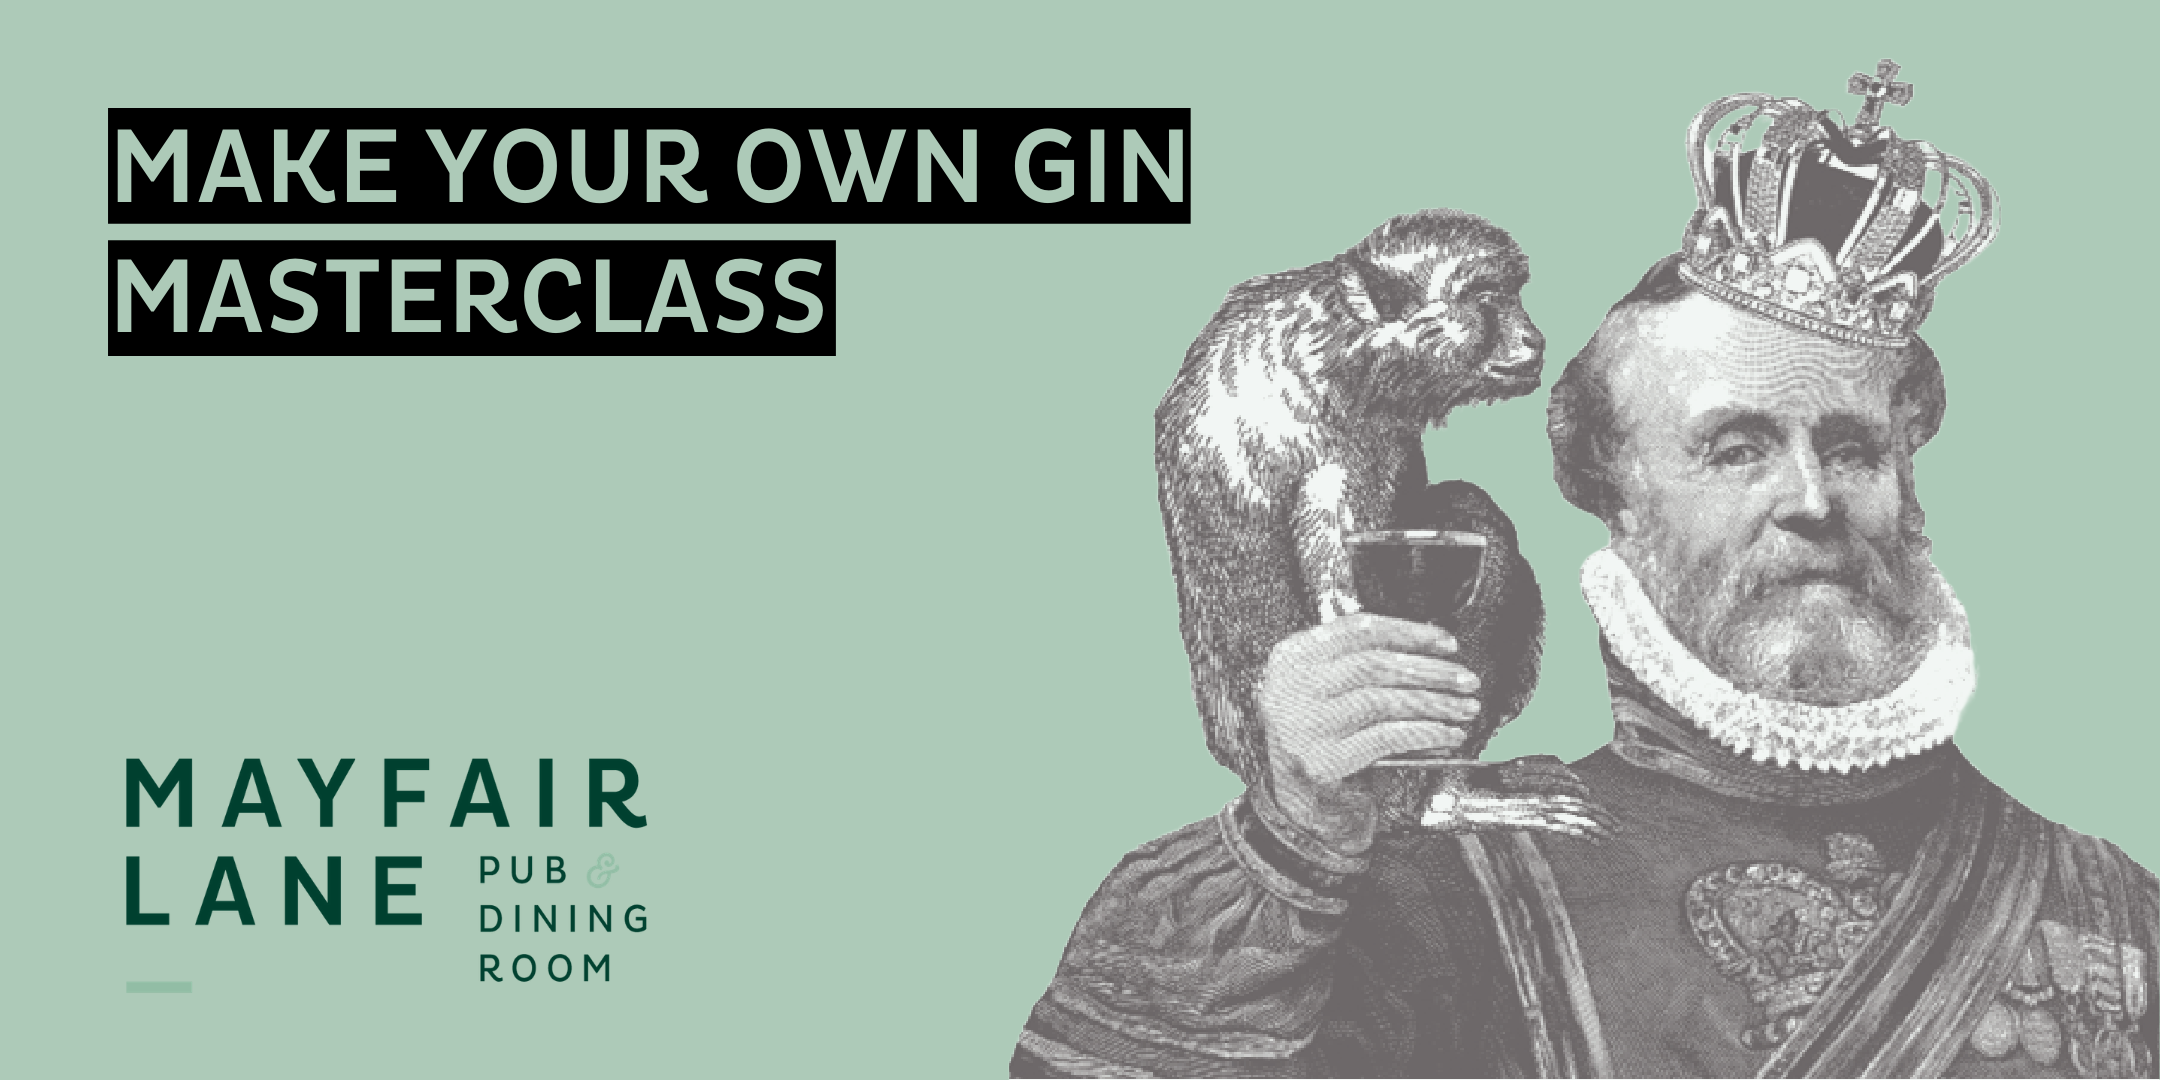 Make Your Own Gin Masterclass!